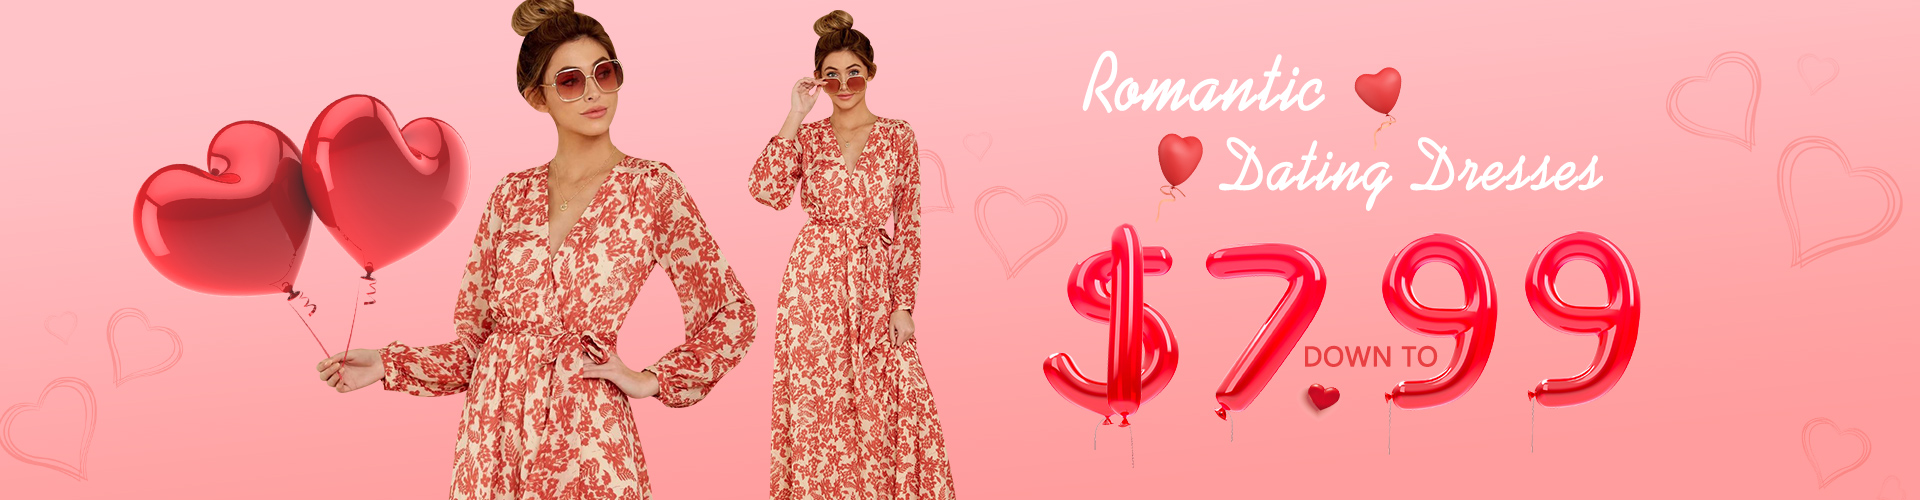 romantic dating dresses on sale